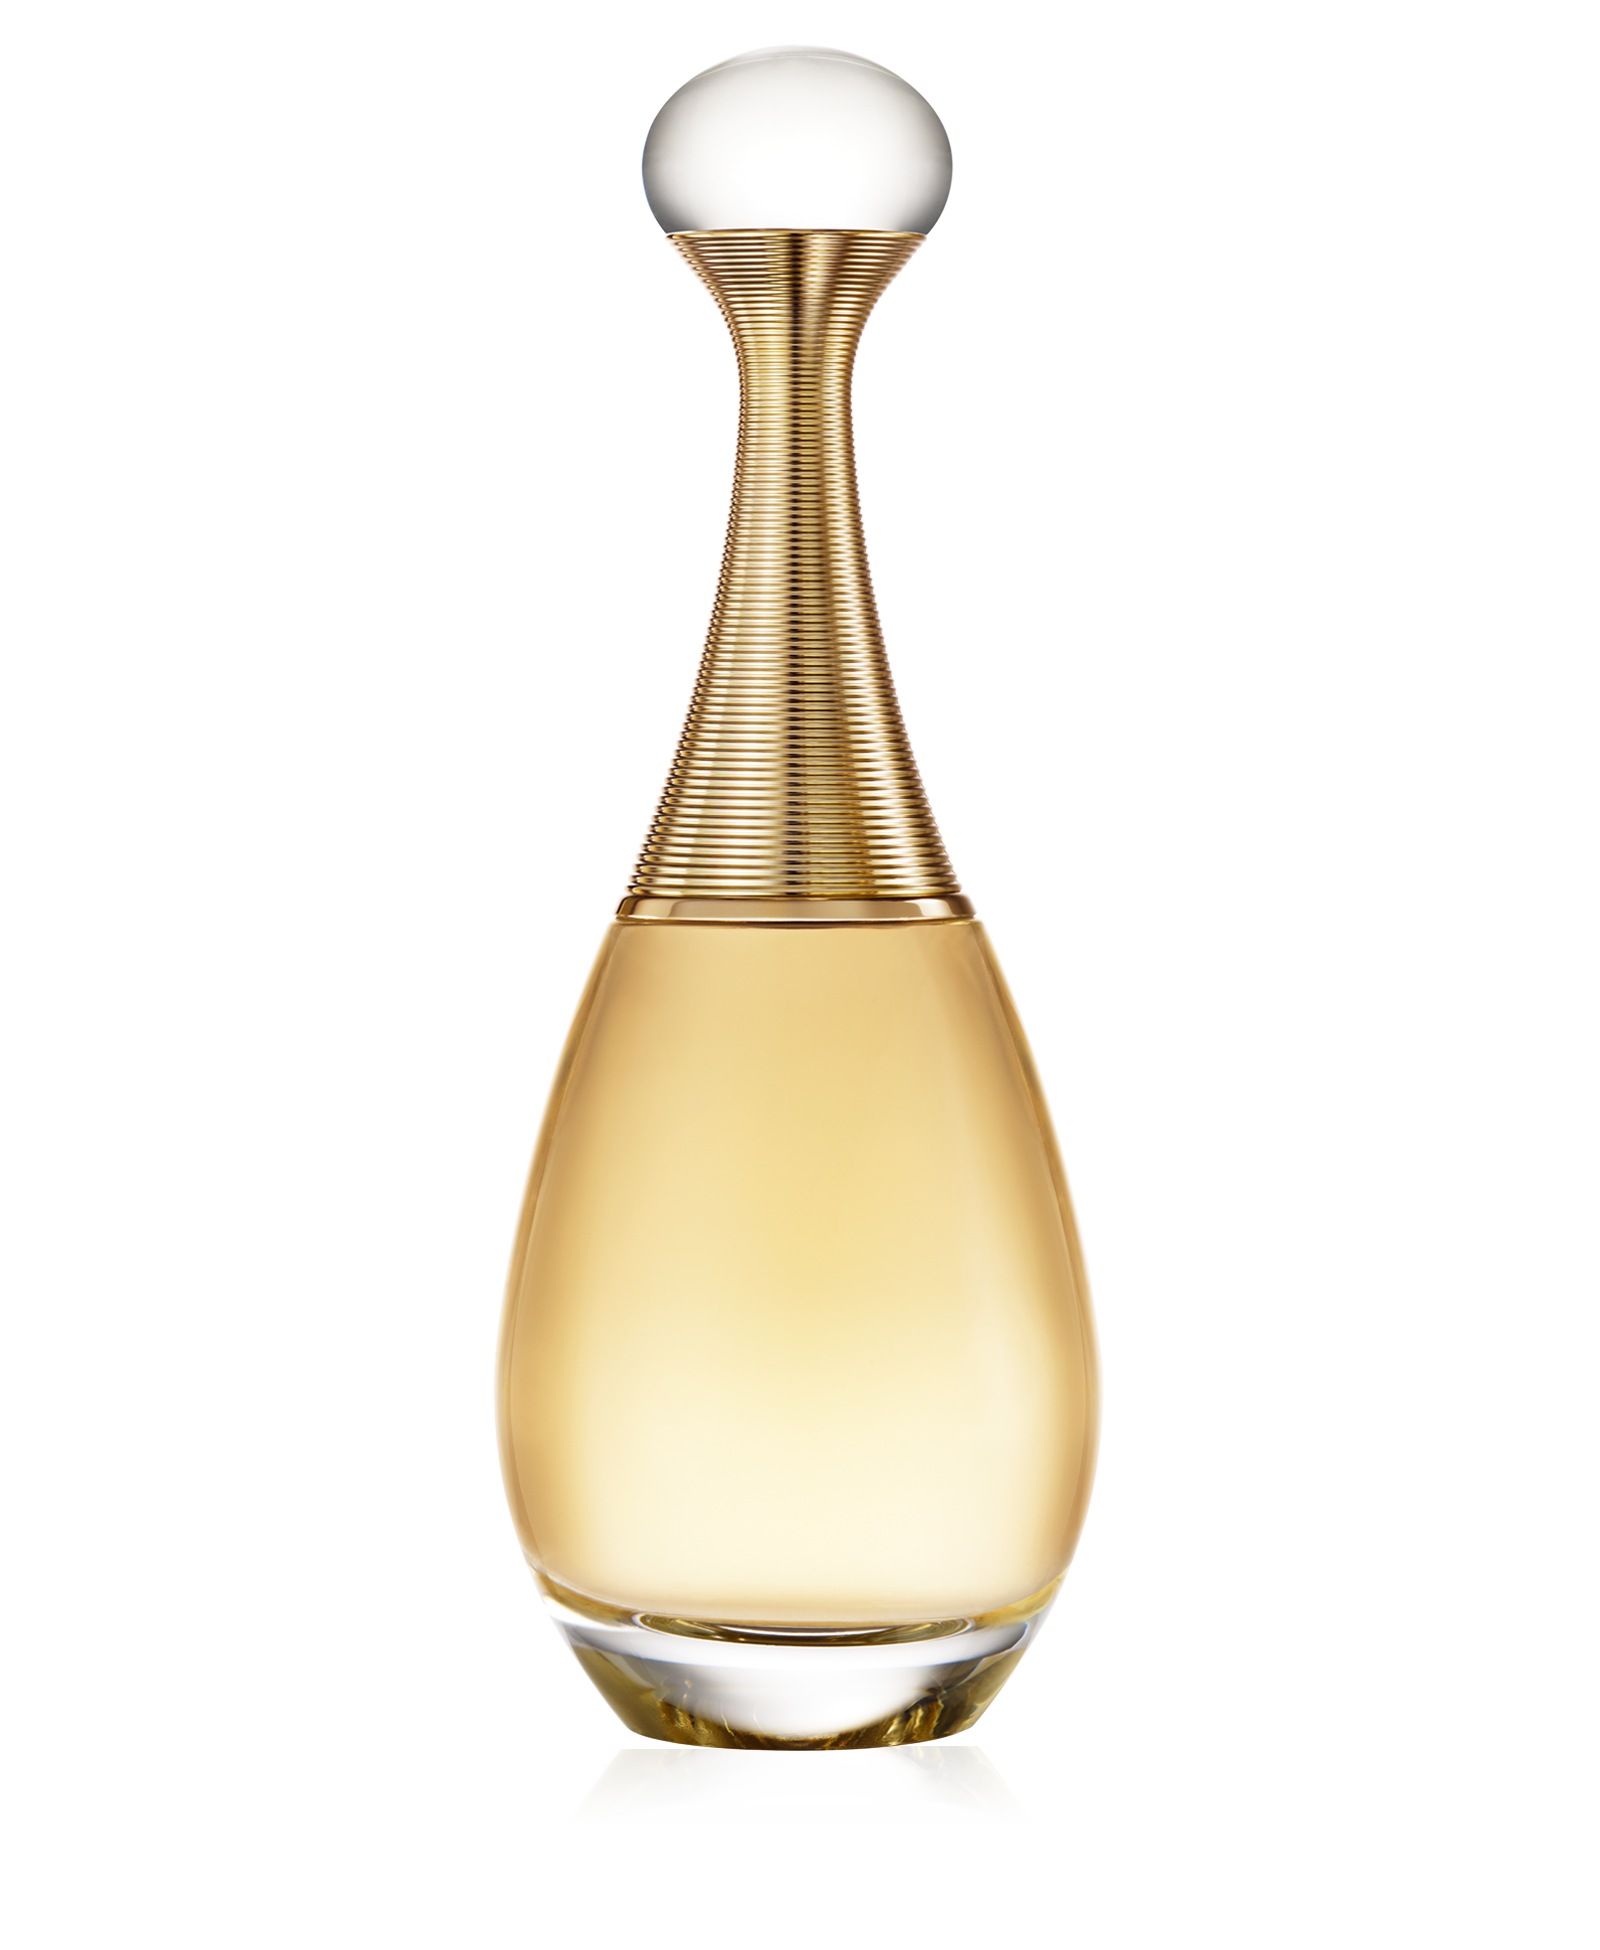 perfume png transparent images download clip #20050